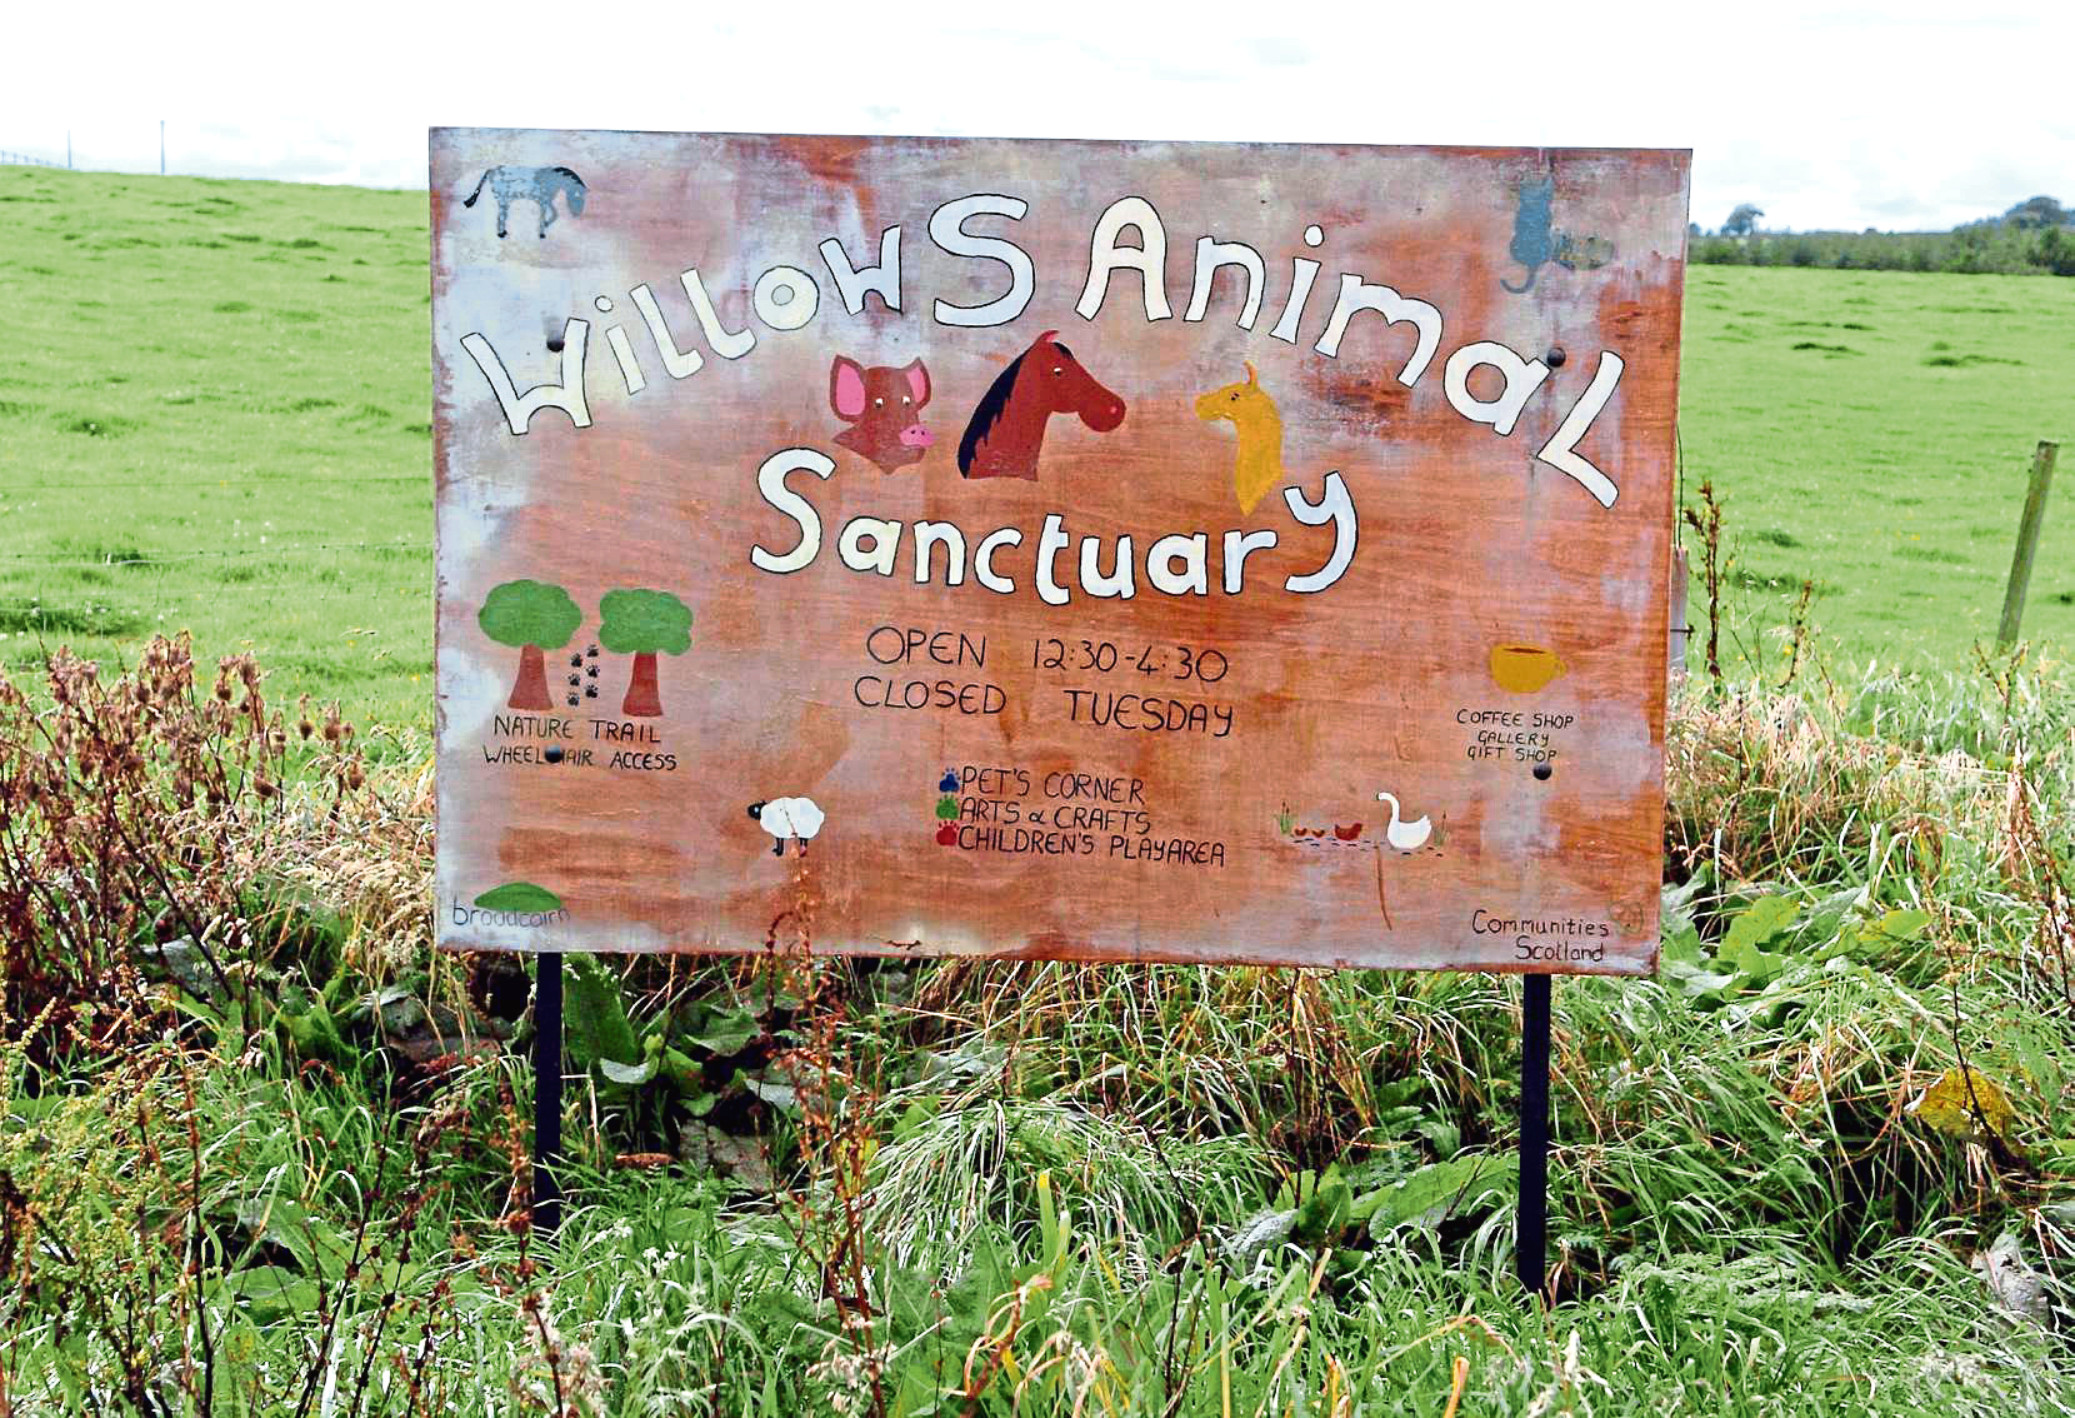 Willows Animal Sanctuary has asked people to donate to their lifeline campaign